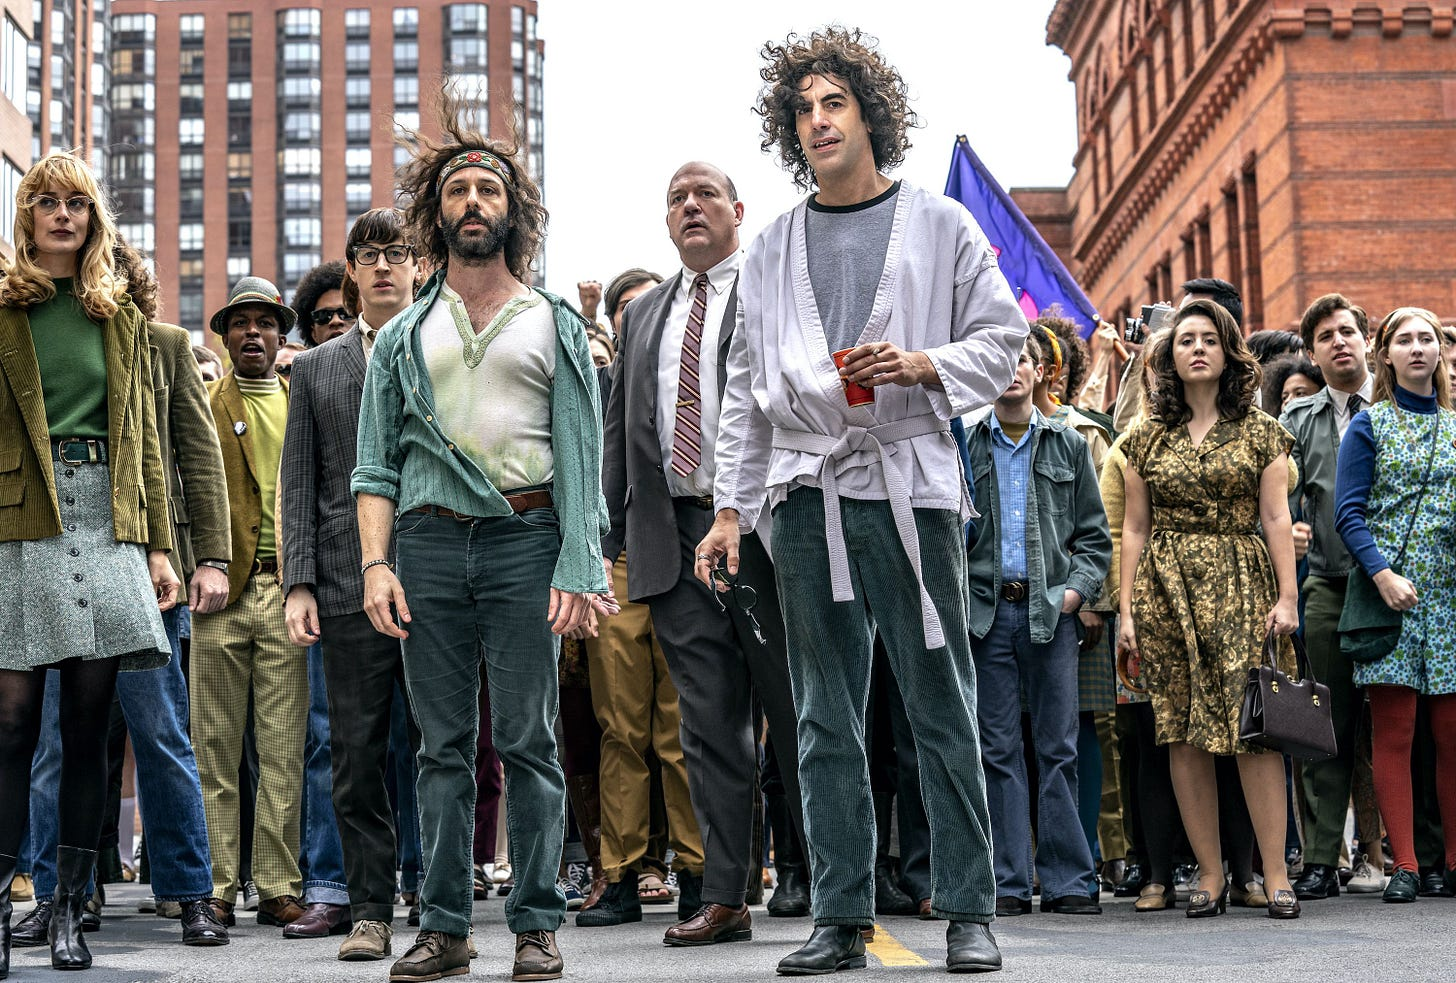 Jeremy Strong and Sasha Baron Cohen in The Trial of the Chicago 7